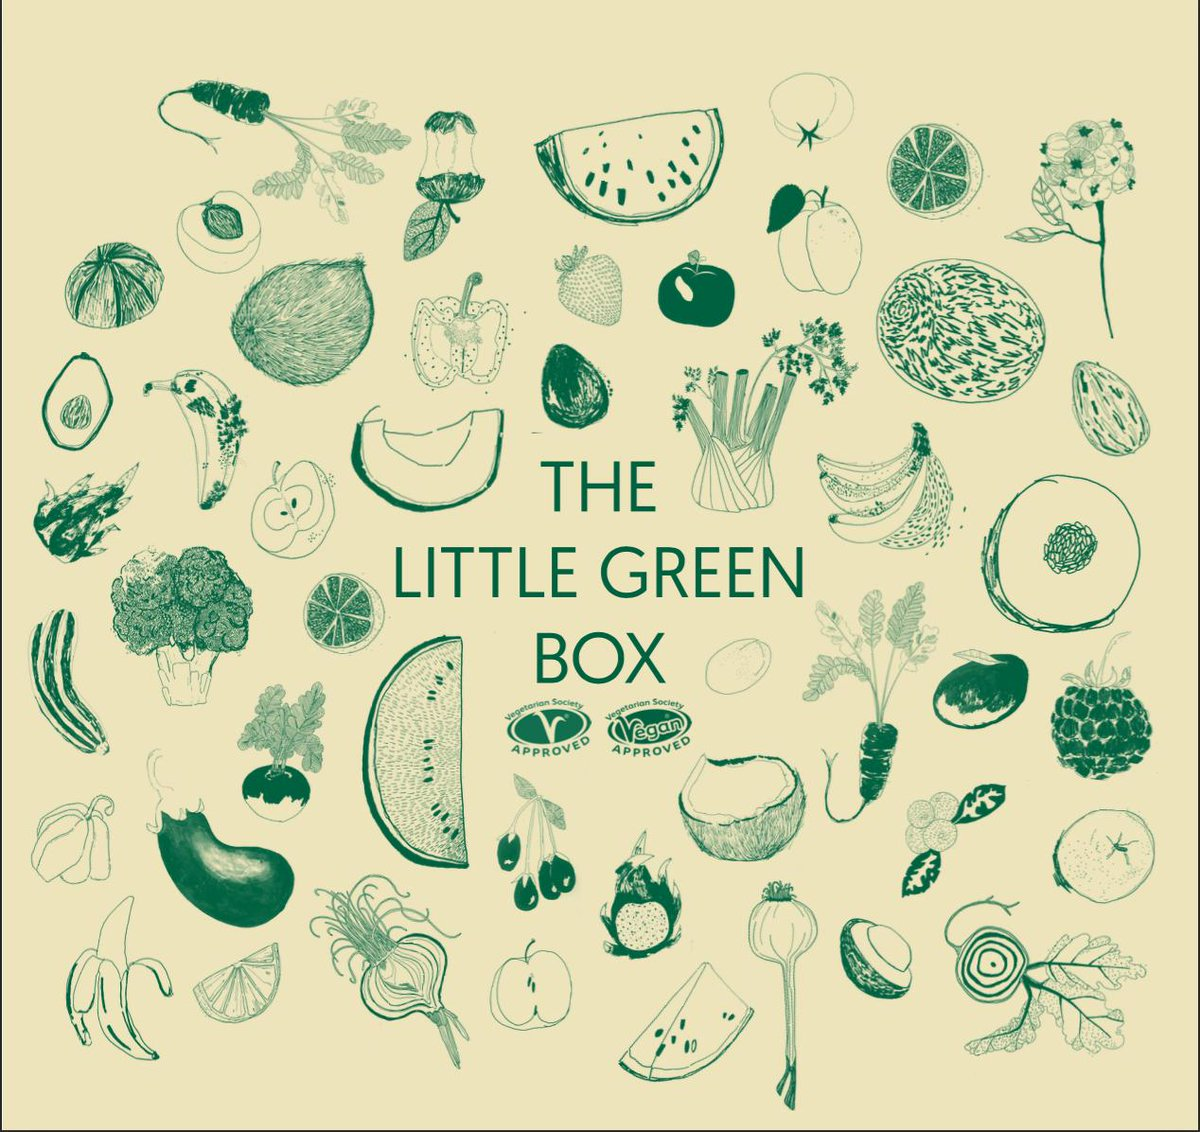 Have you heard about our #LittleGreenBox? It's packed full of veggie and vegan treats and we're sending thousands to universities across the UK during #FreshersWeek2019. We want to show everyone eating veggie food is one of the best things you can do to stop climate change!